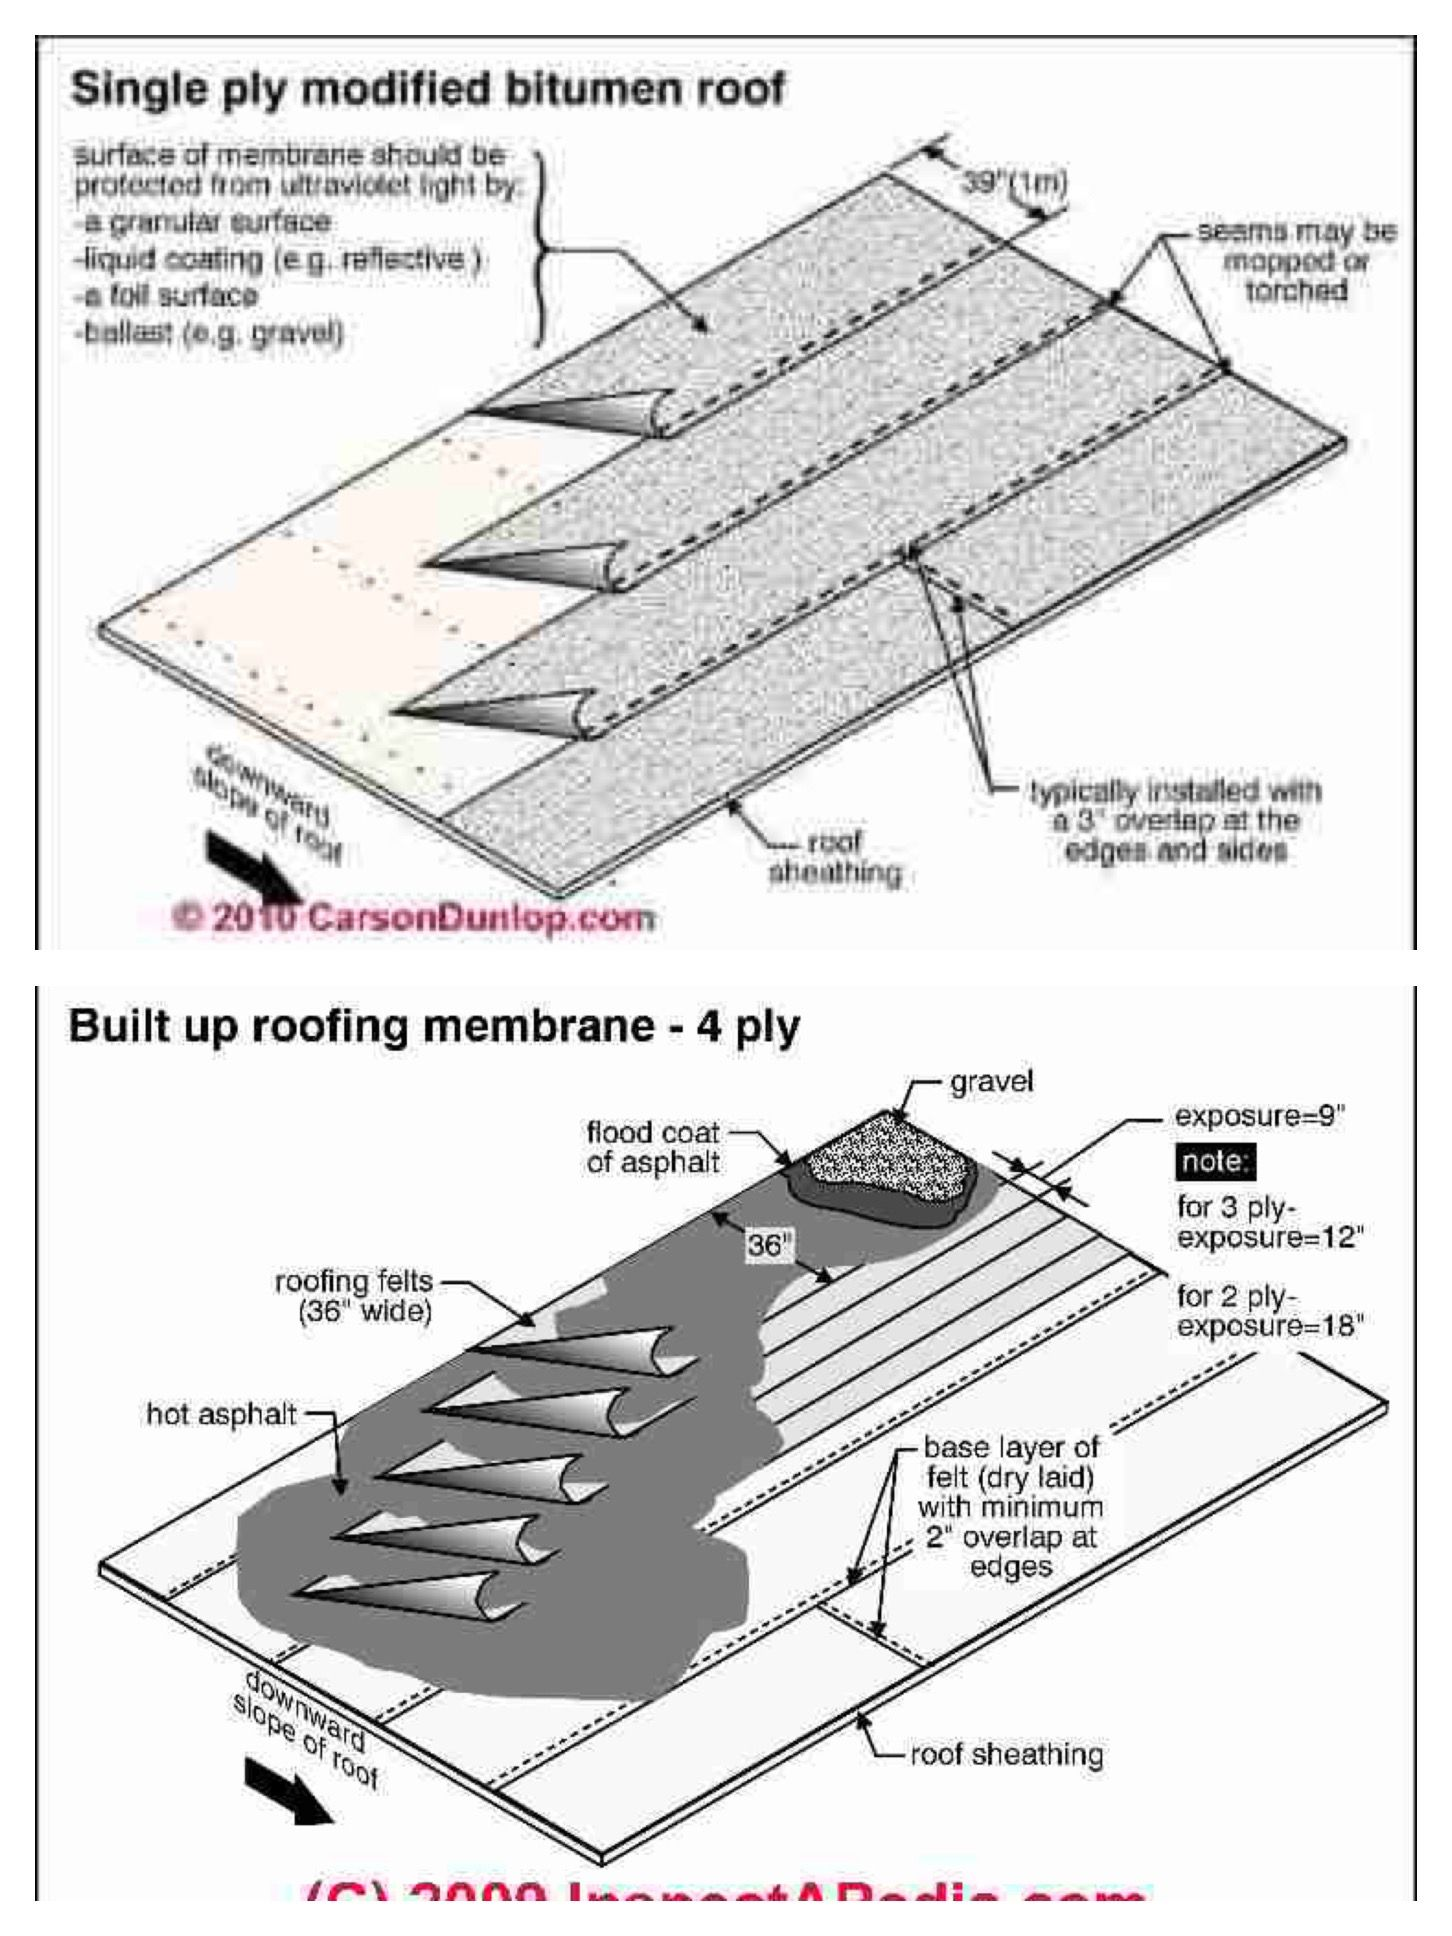 Single Ply Vs Built Up Roof Built Up Roofing Refers To Any Roofing System That Is Installed In Multiple Layers Using Mansard Roof Roof Detail Bitumen Roof